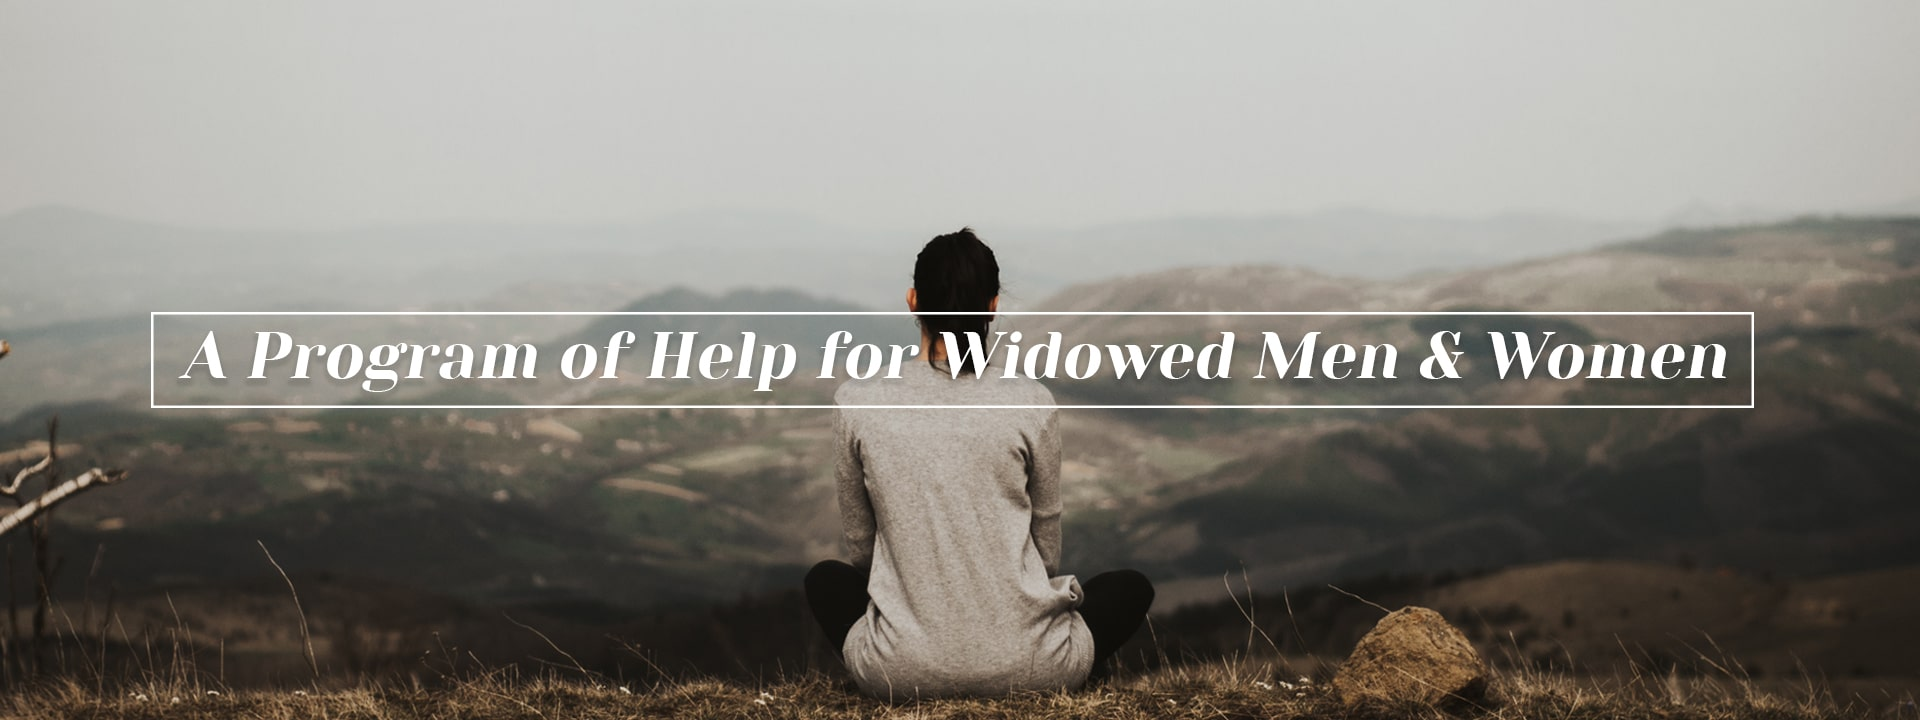 A Program of Help for Widowed Men and Women